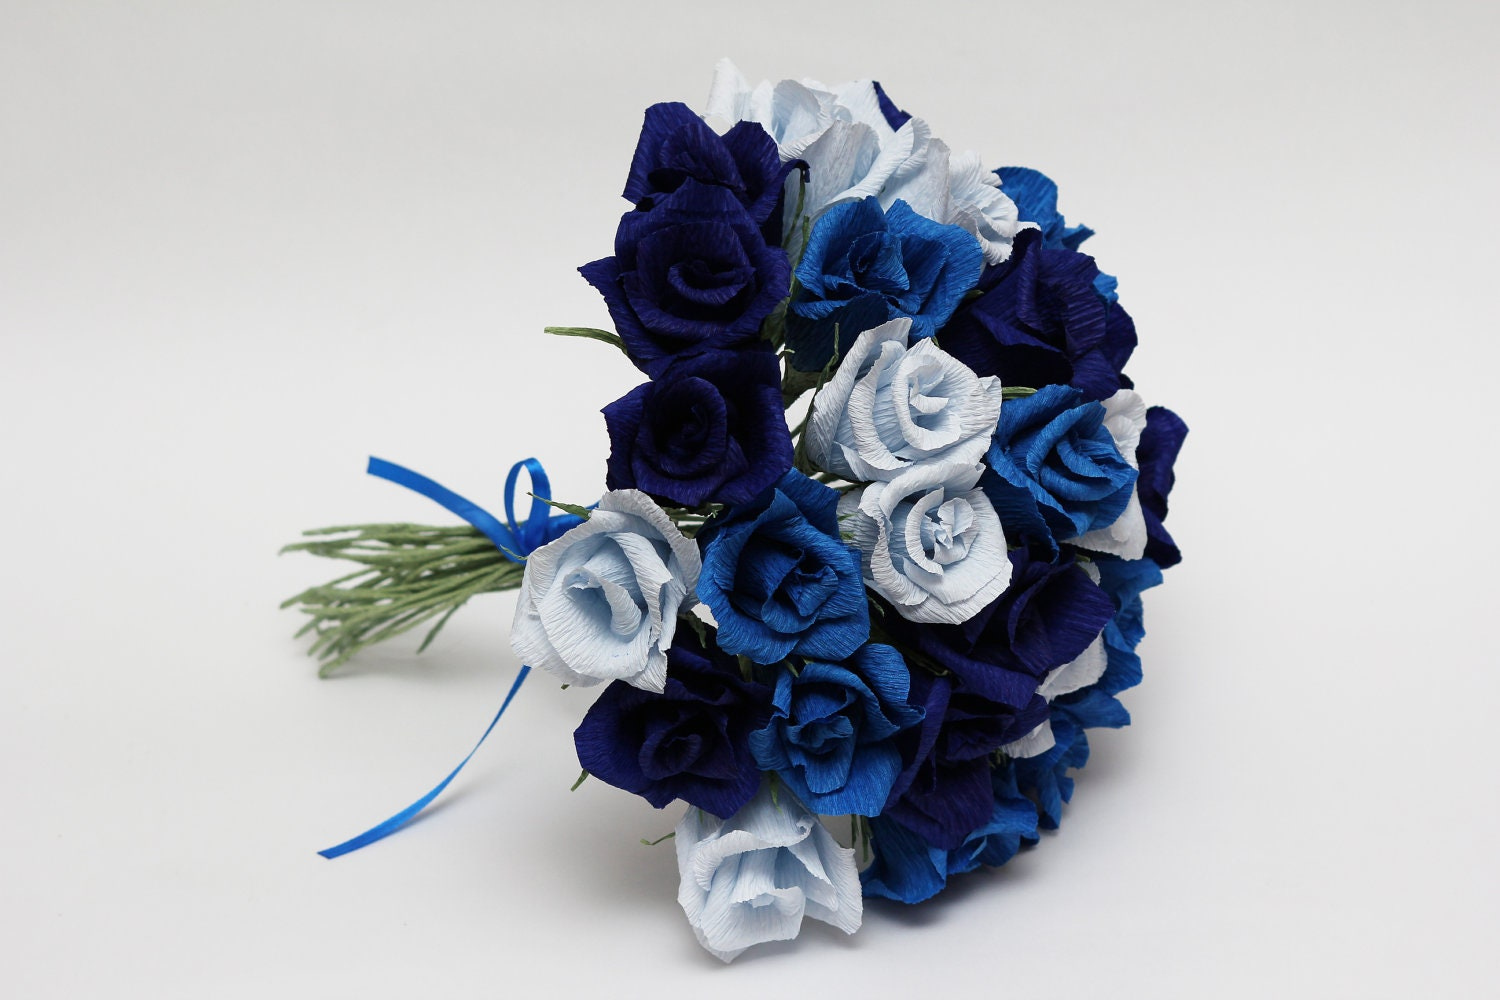 blue flowers wedding bouquet bridesmaid bouquet paper flowers wedding flowers wedding 1934